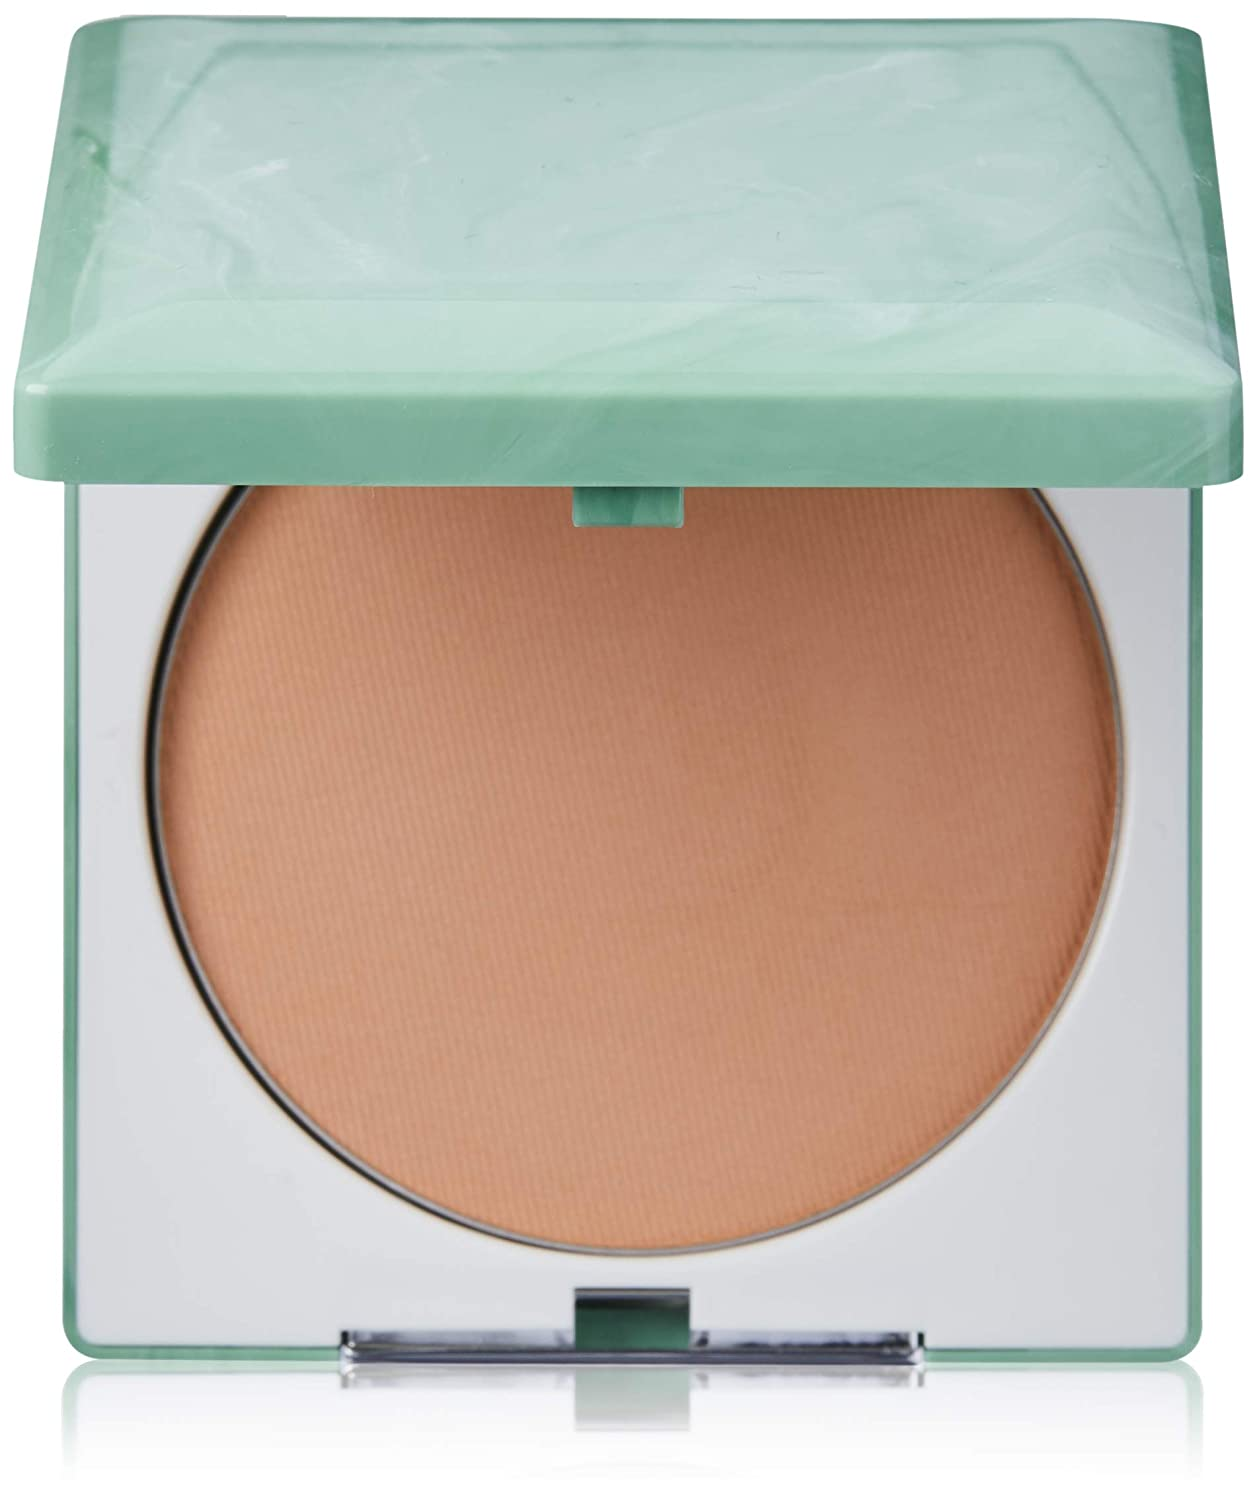 Clinique Stay Matte Sheer Pressed Powder Compact .27 oz, Stay Brandy 11